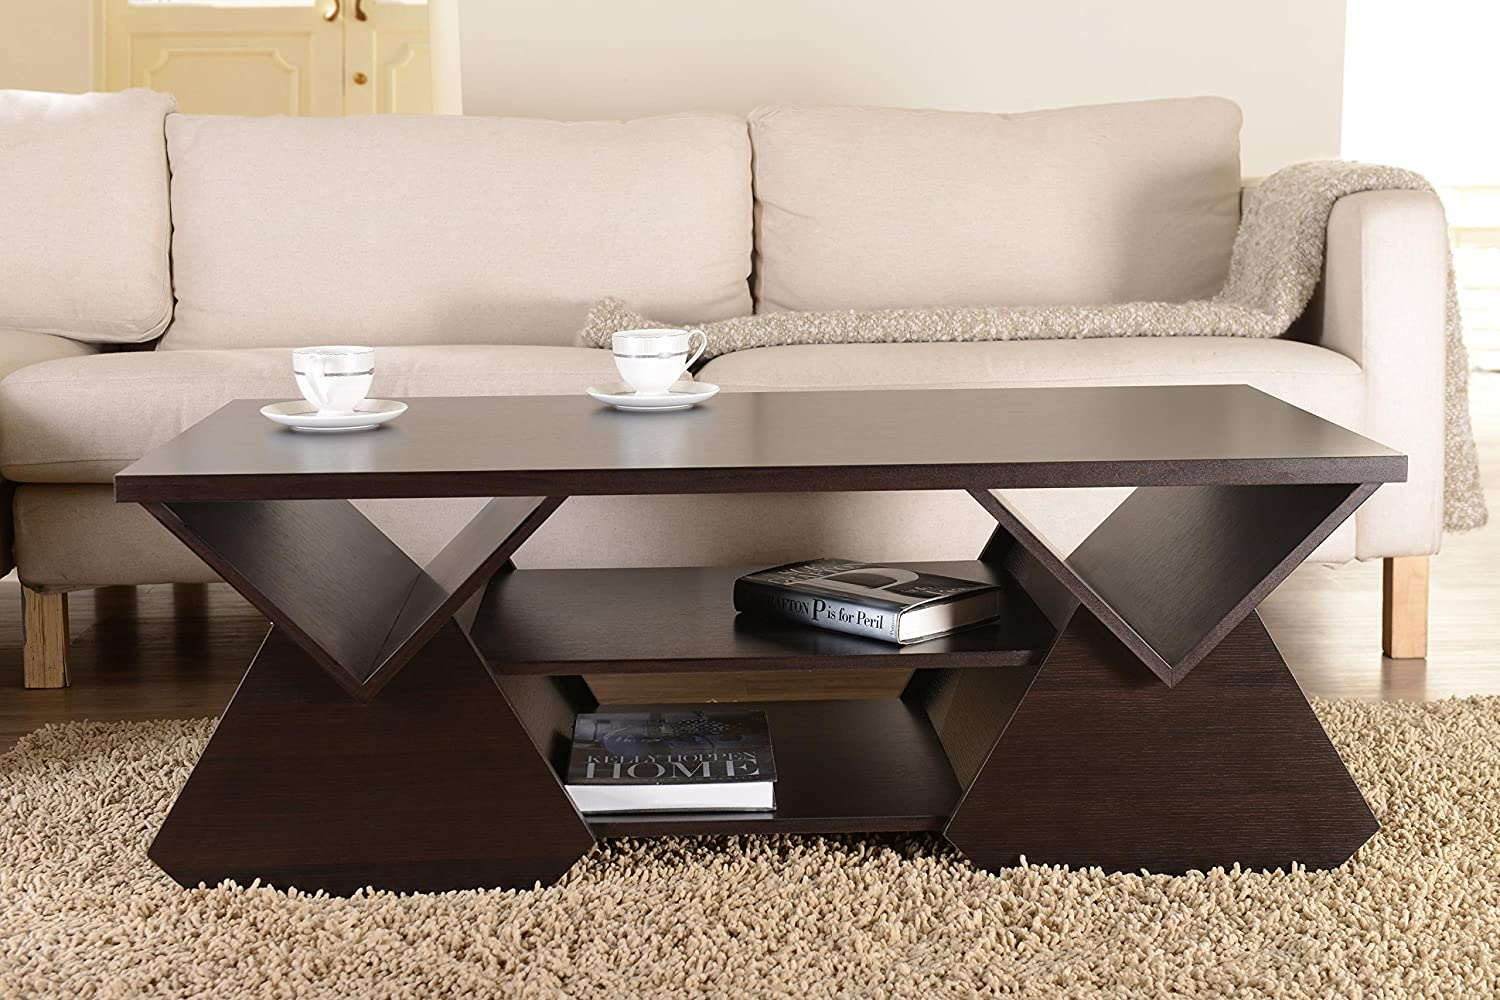 Amazon iohomes chinua modern coffee table espresso kitchen amazon iohomes chinua modern coffee table espresso kitchen dining geotapseo Gallery